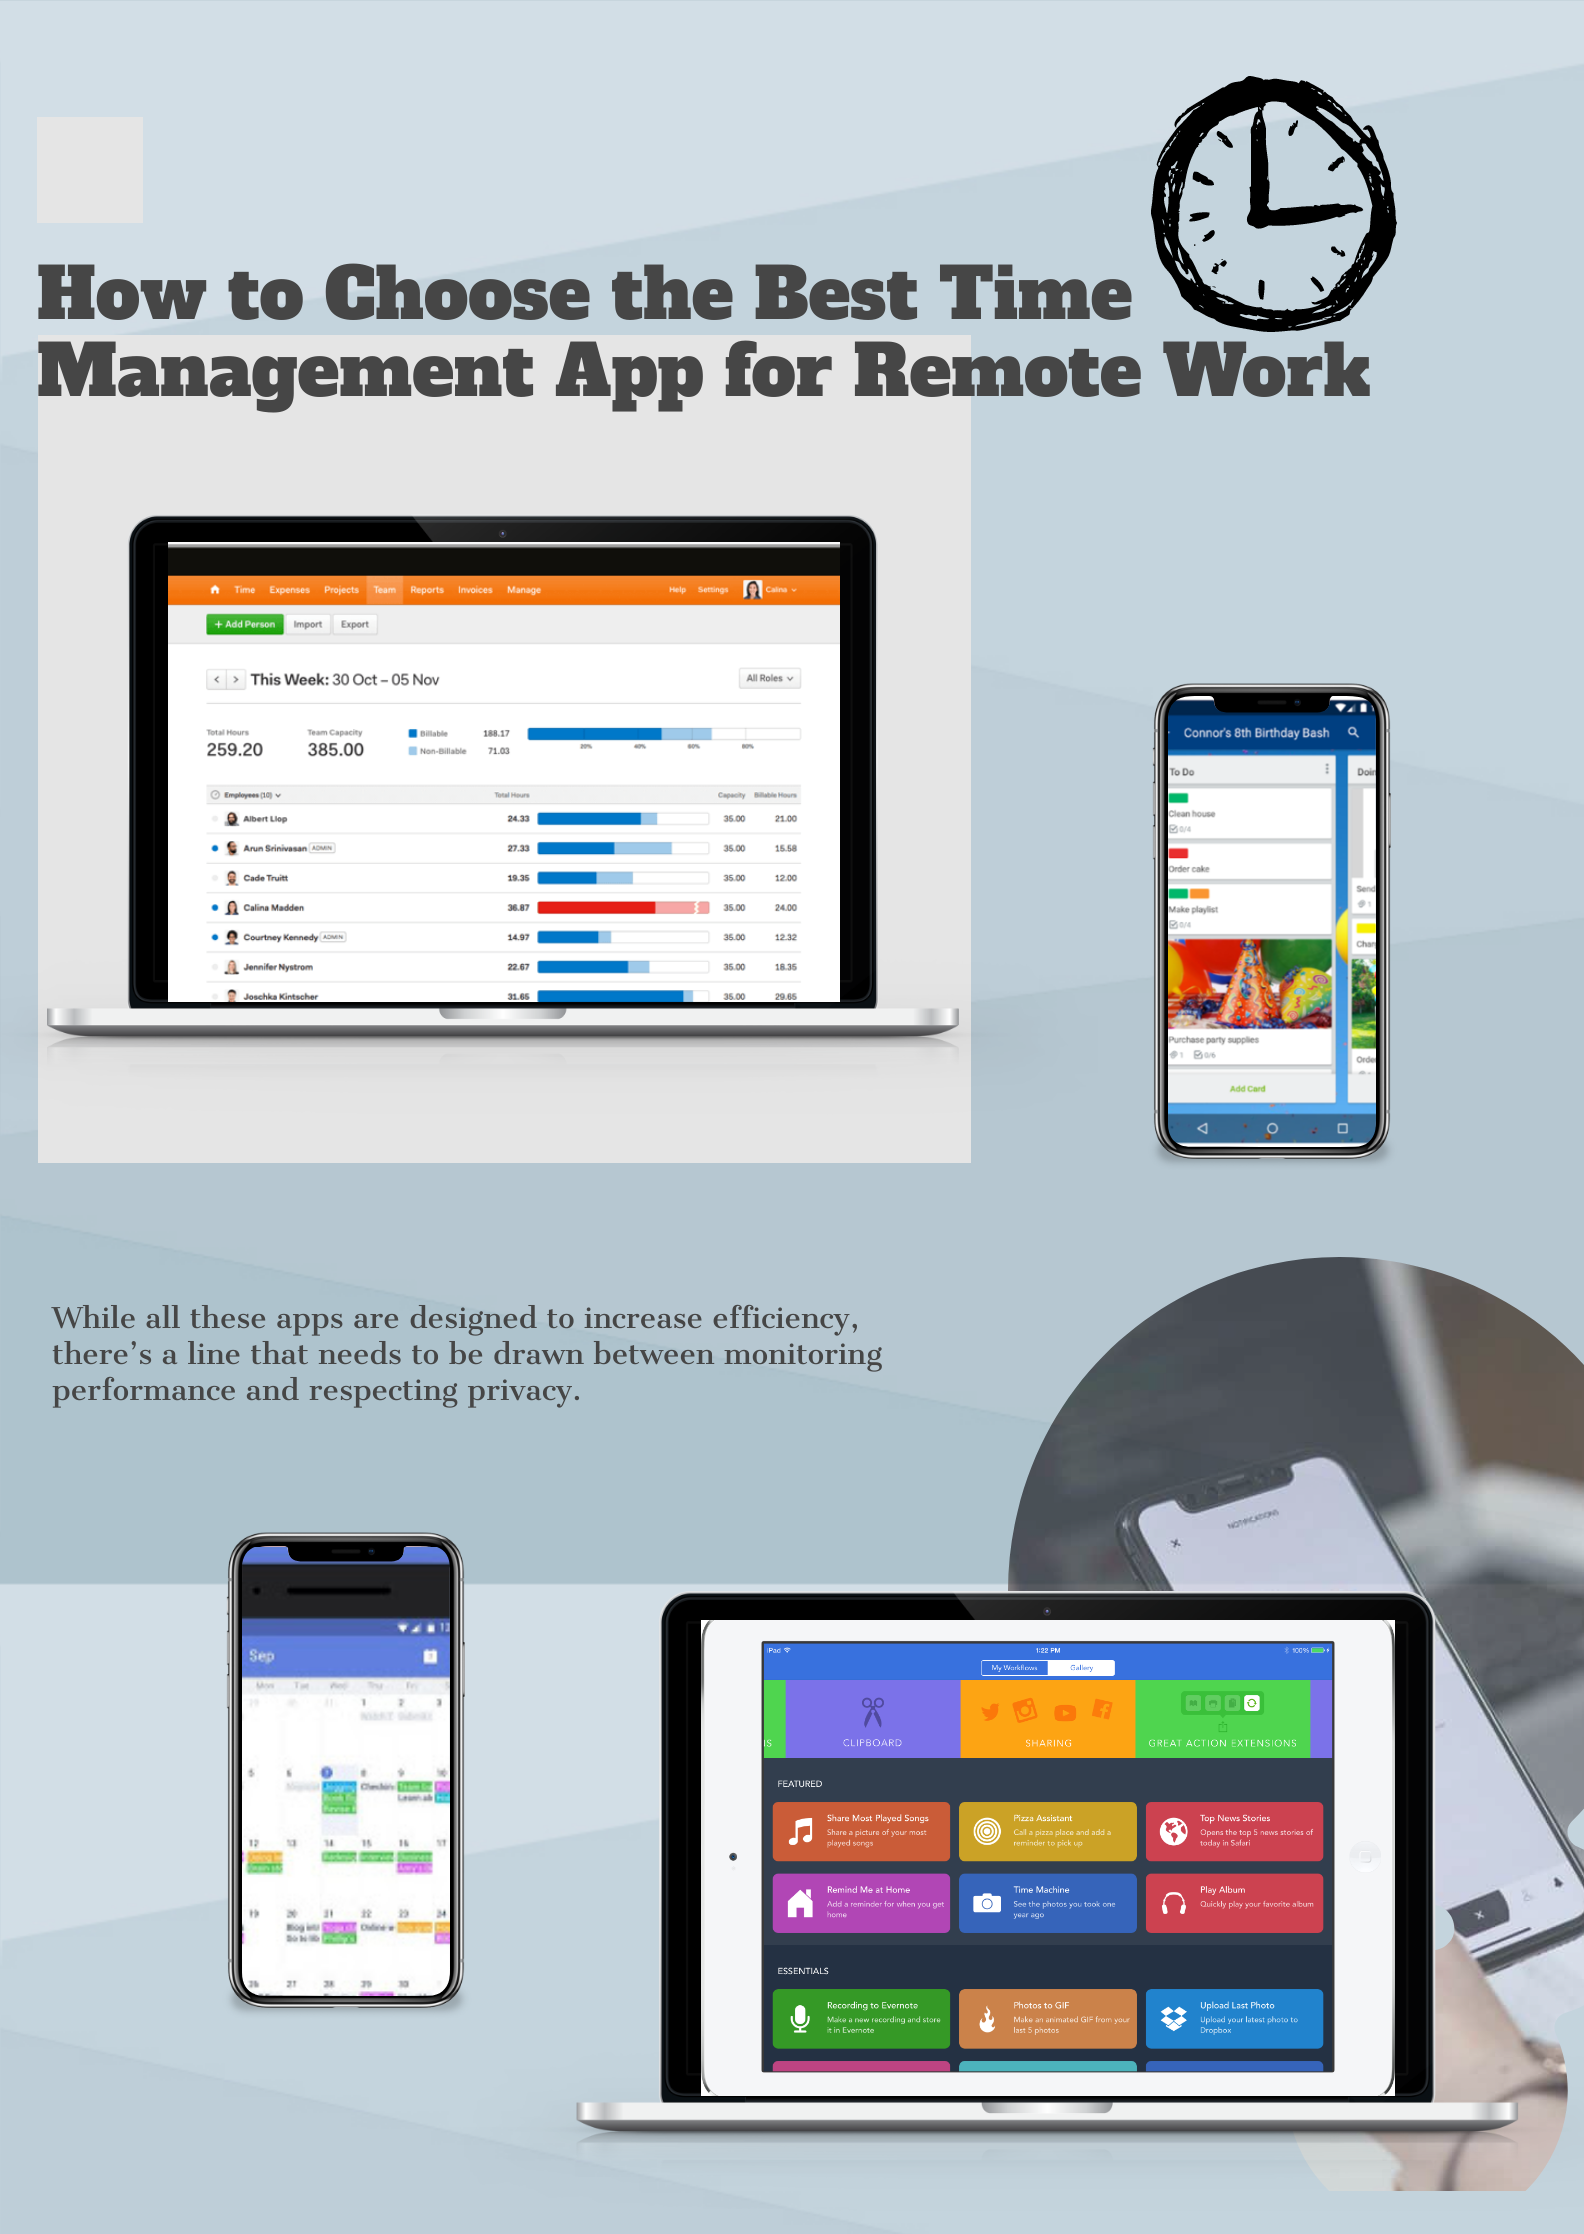 how to choose the best time management app for remote work